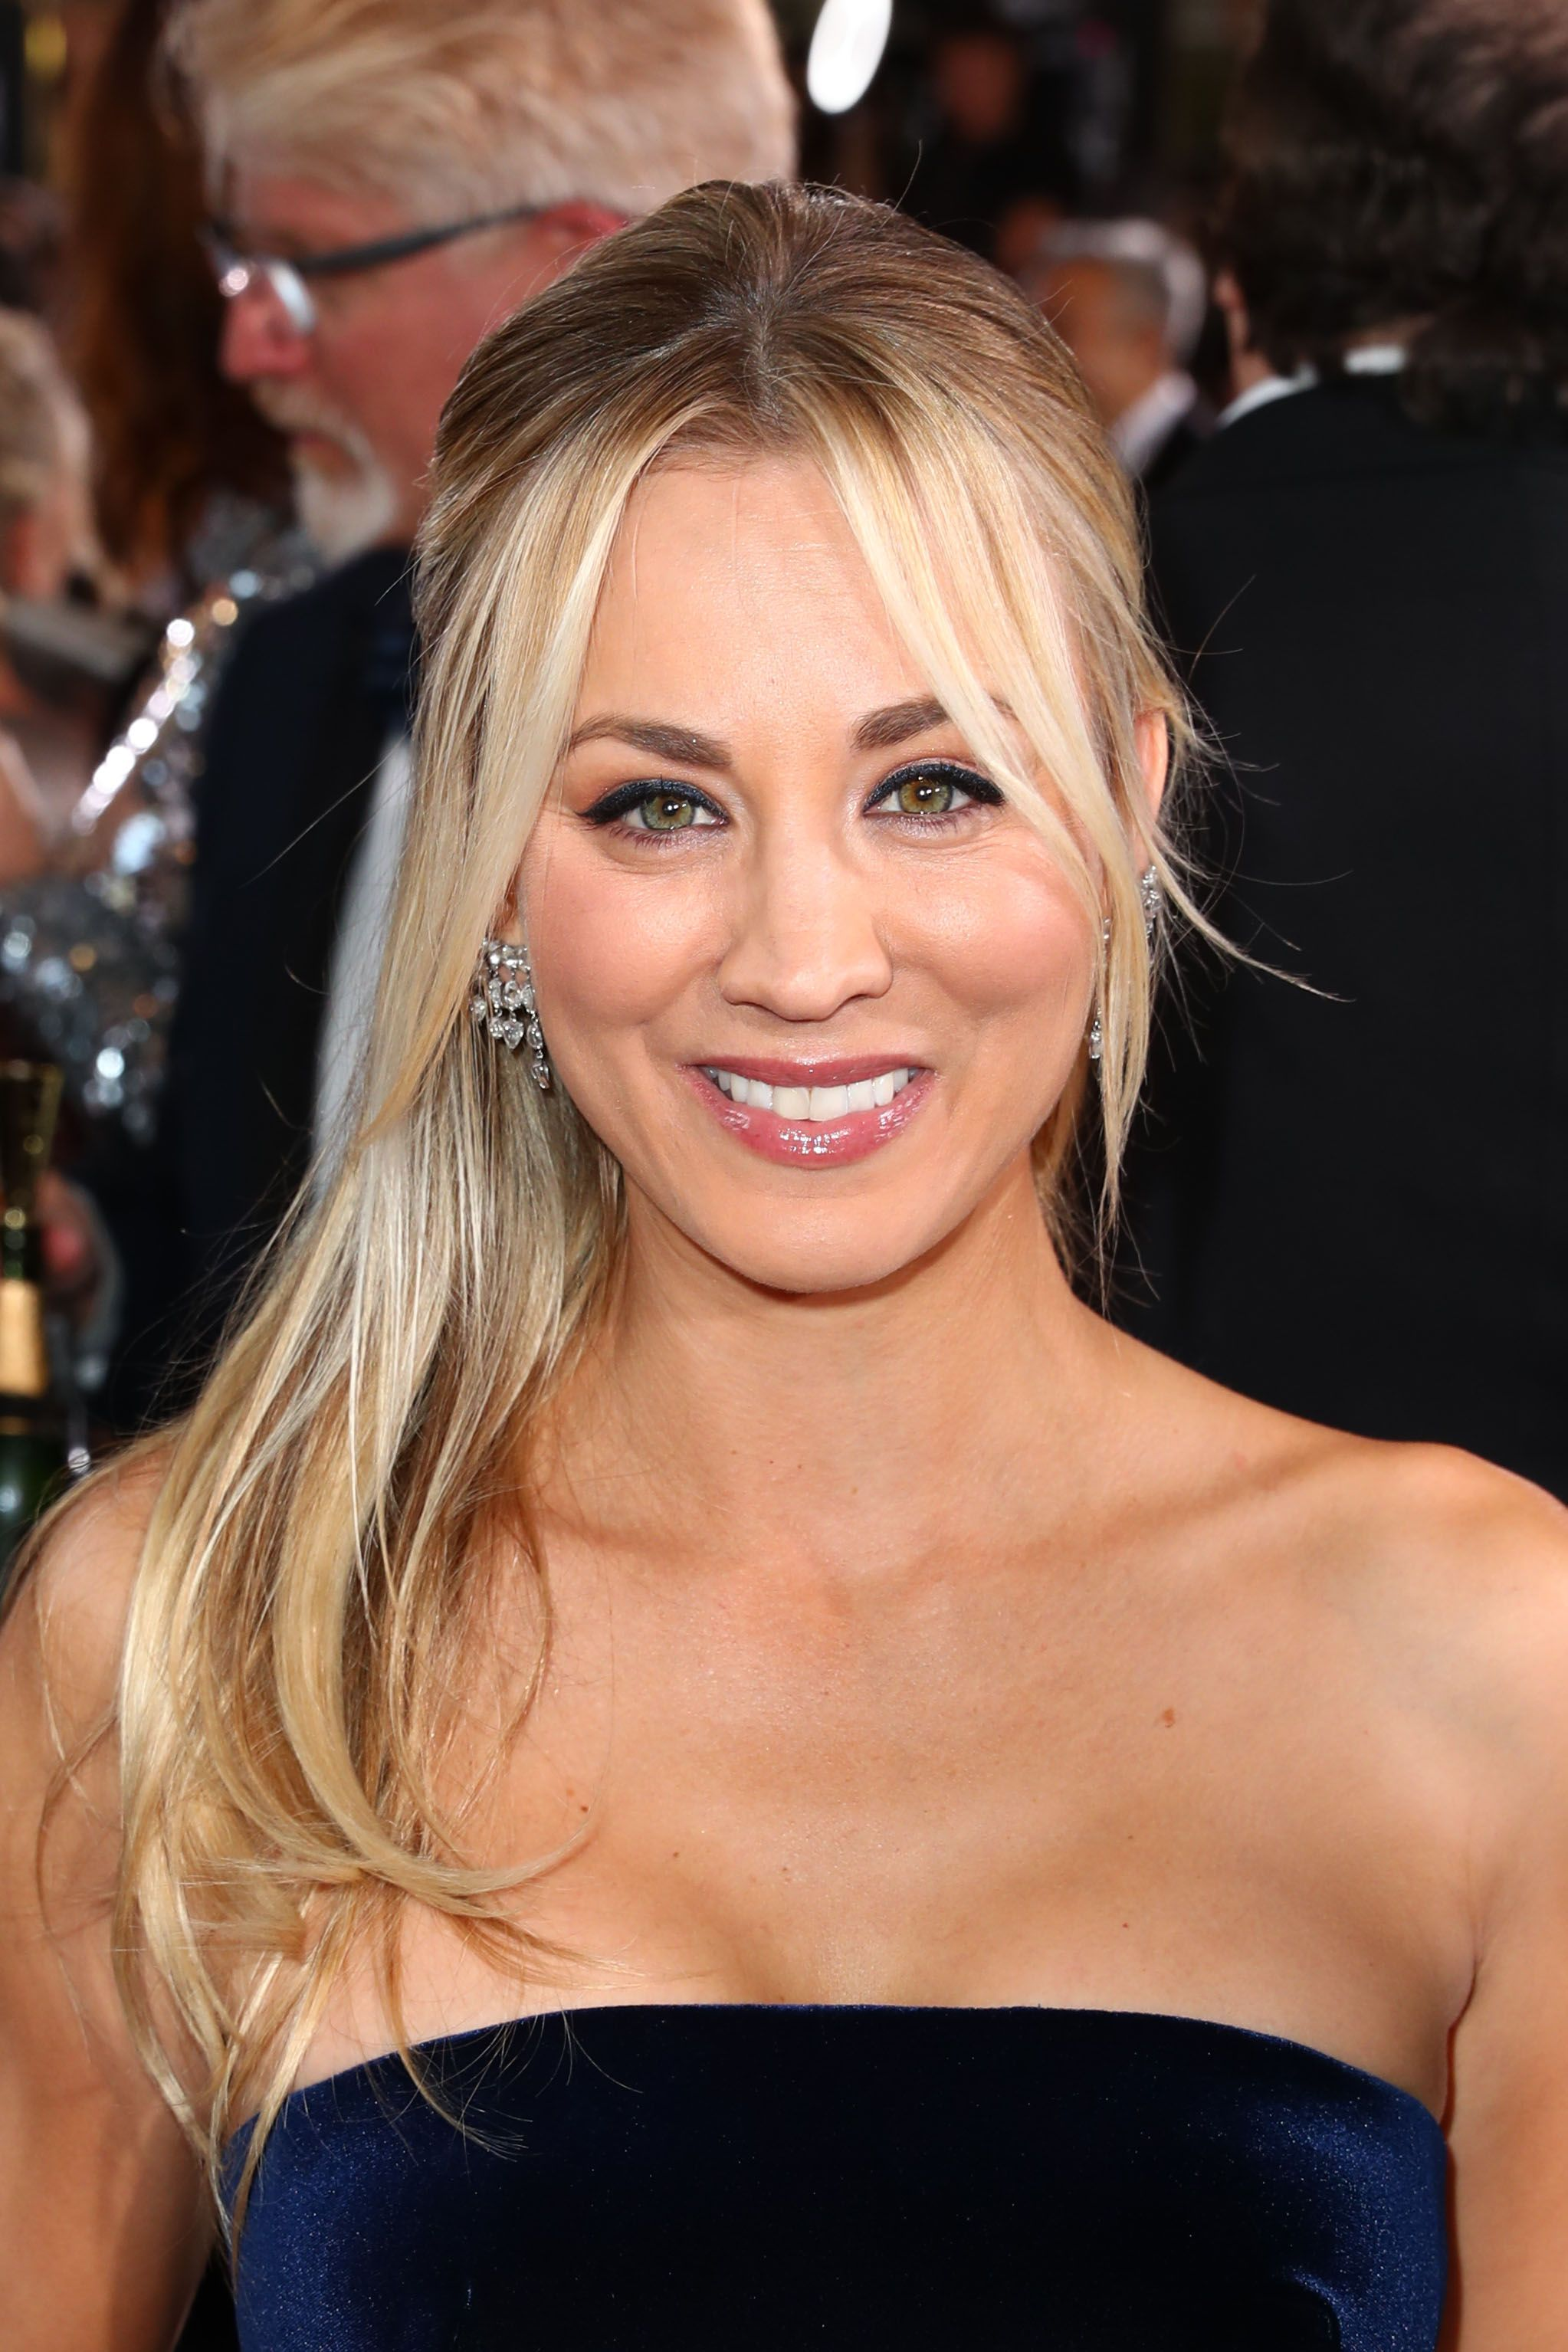 Kaley Cuoco Shares Sweet Goodbye Images Of Big Bang Theory Cast